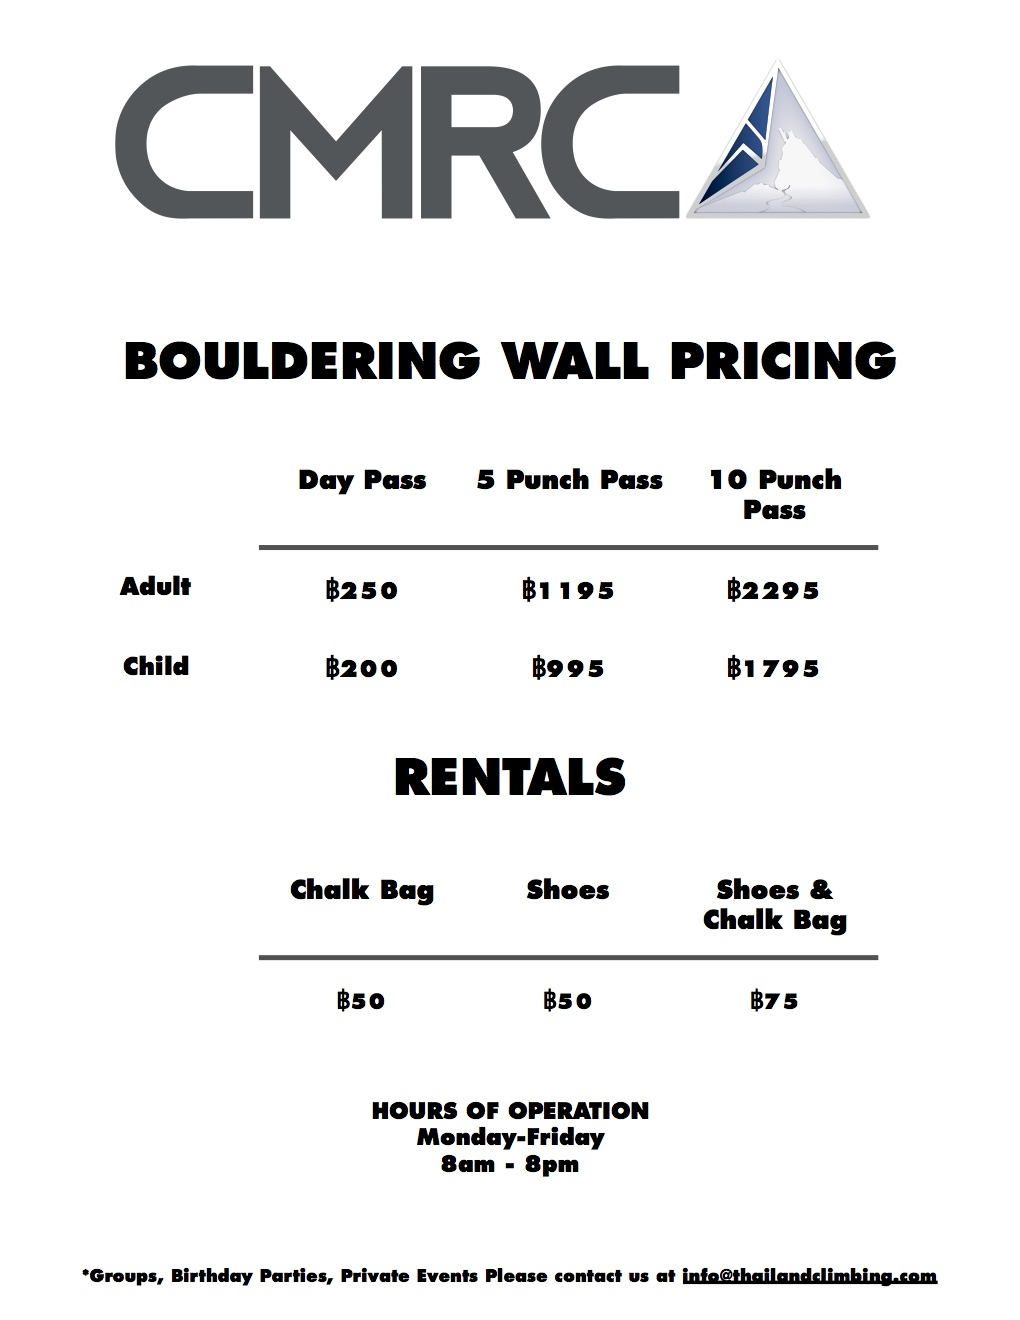 Bouldering Wall Pricing 2017 #1